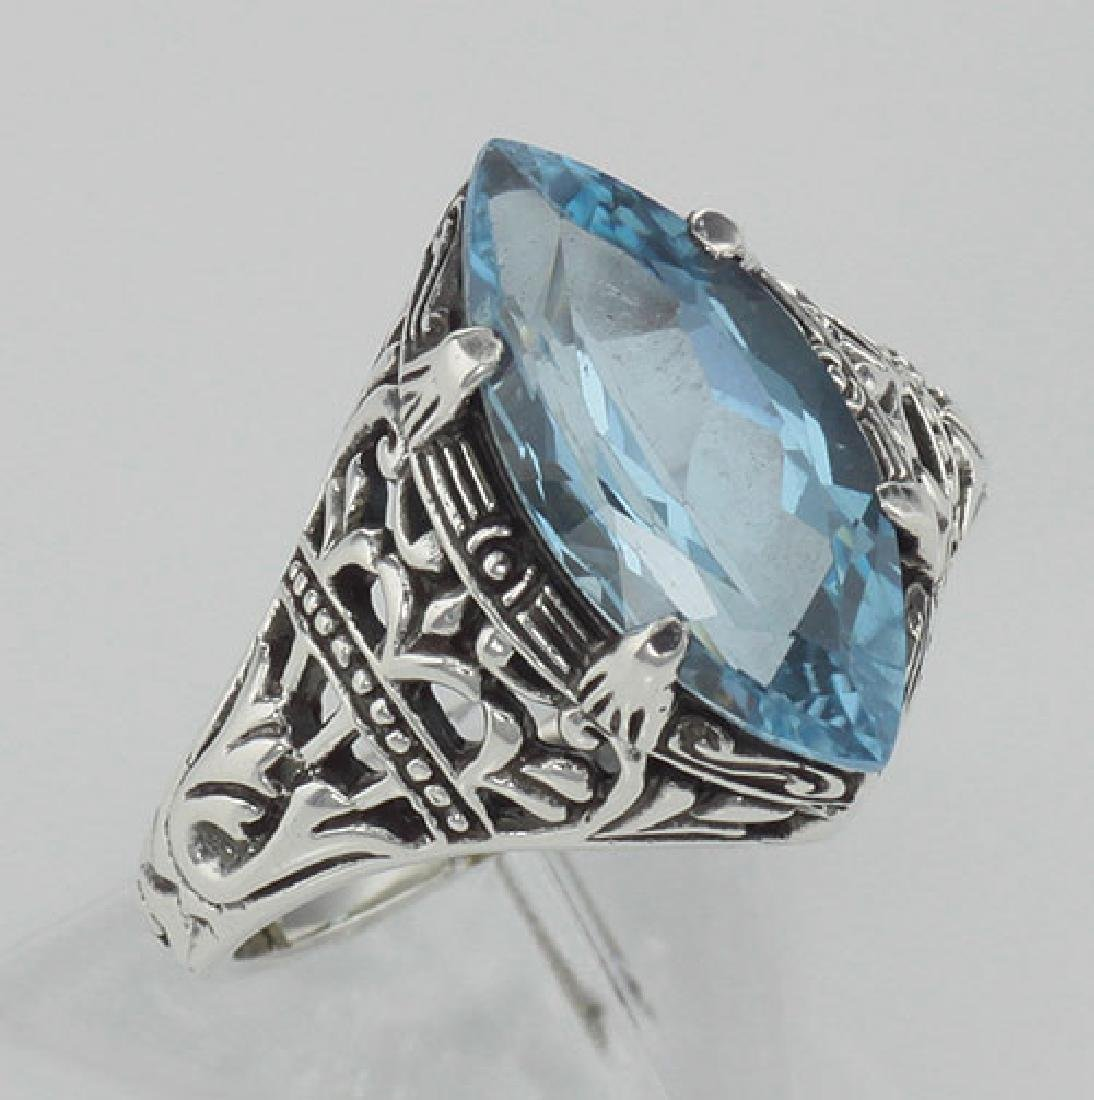 Antique Victorian Style Blue Topaz Filigree Ring - Ster